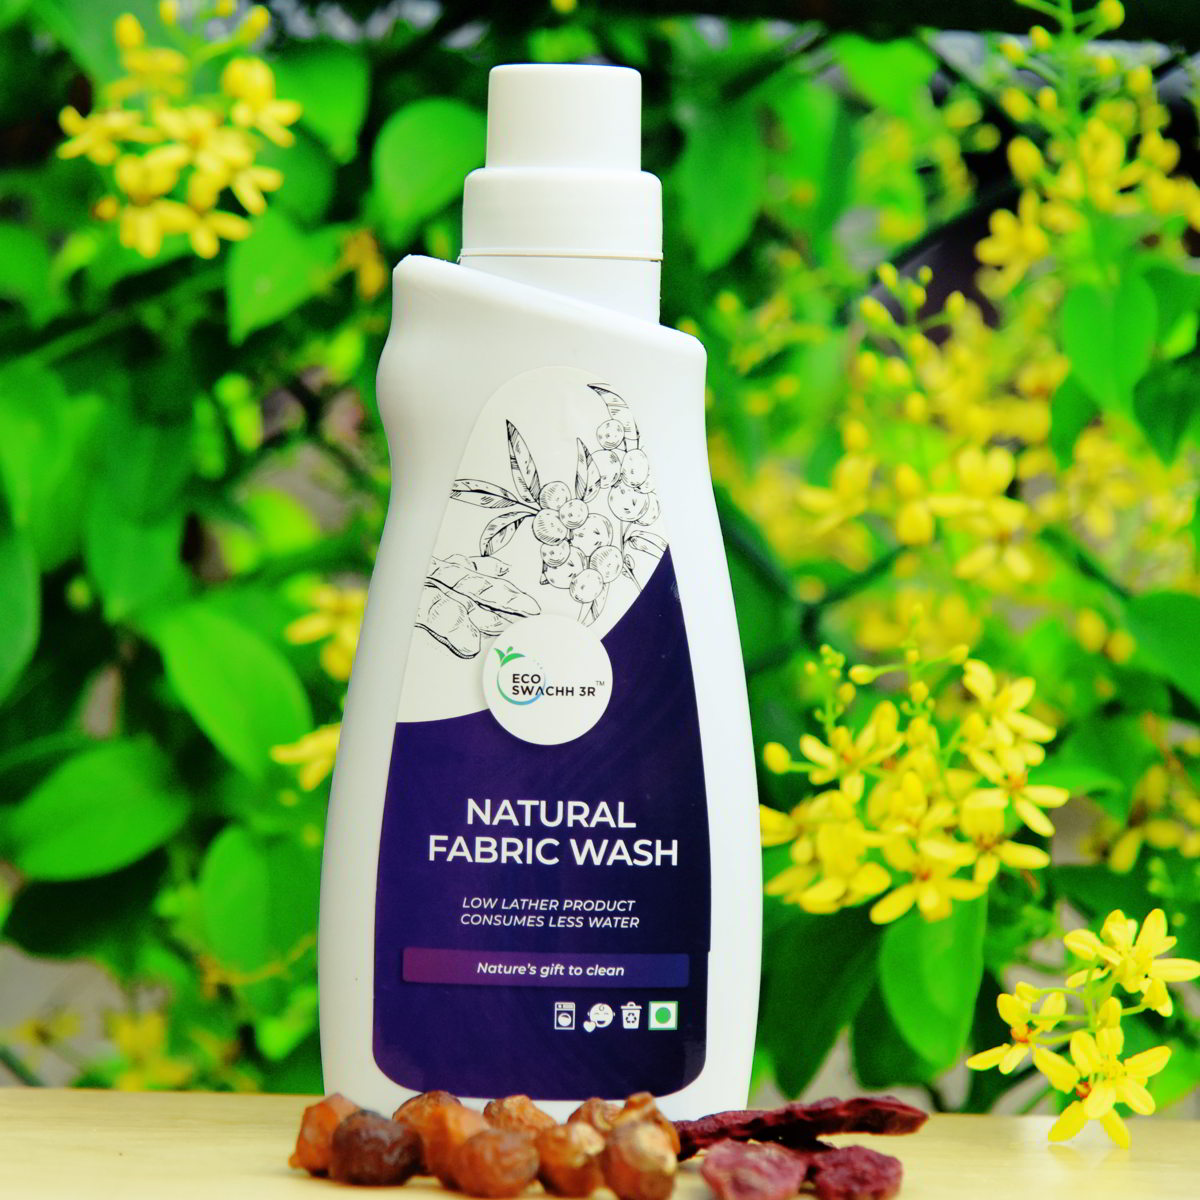 EcoSwachh 3R - Natural Fabric Wash